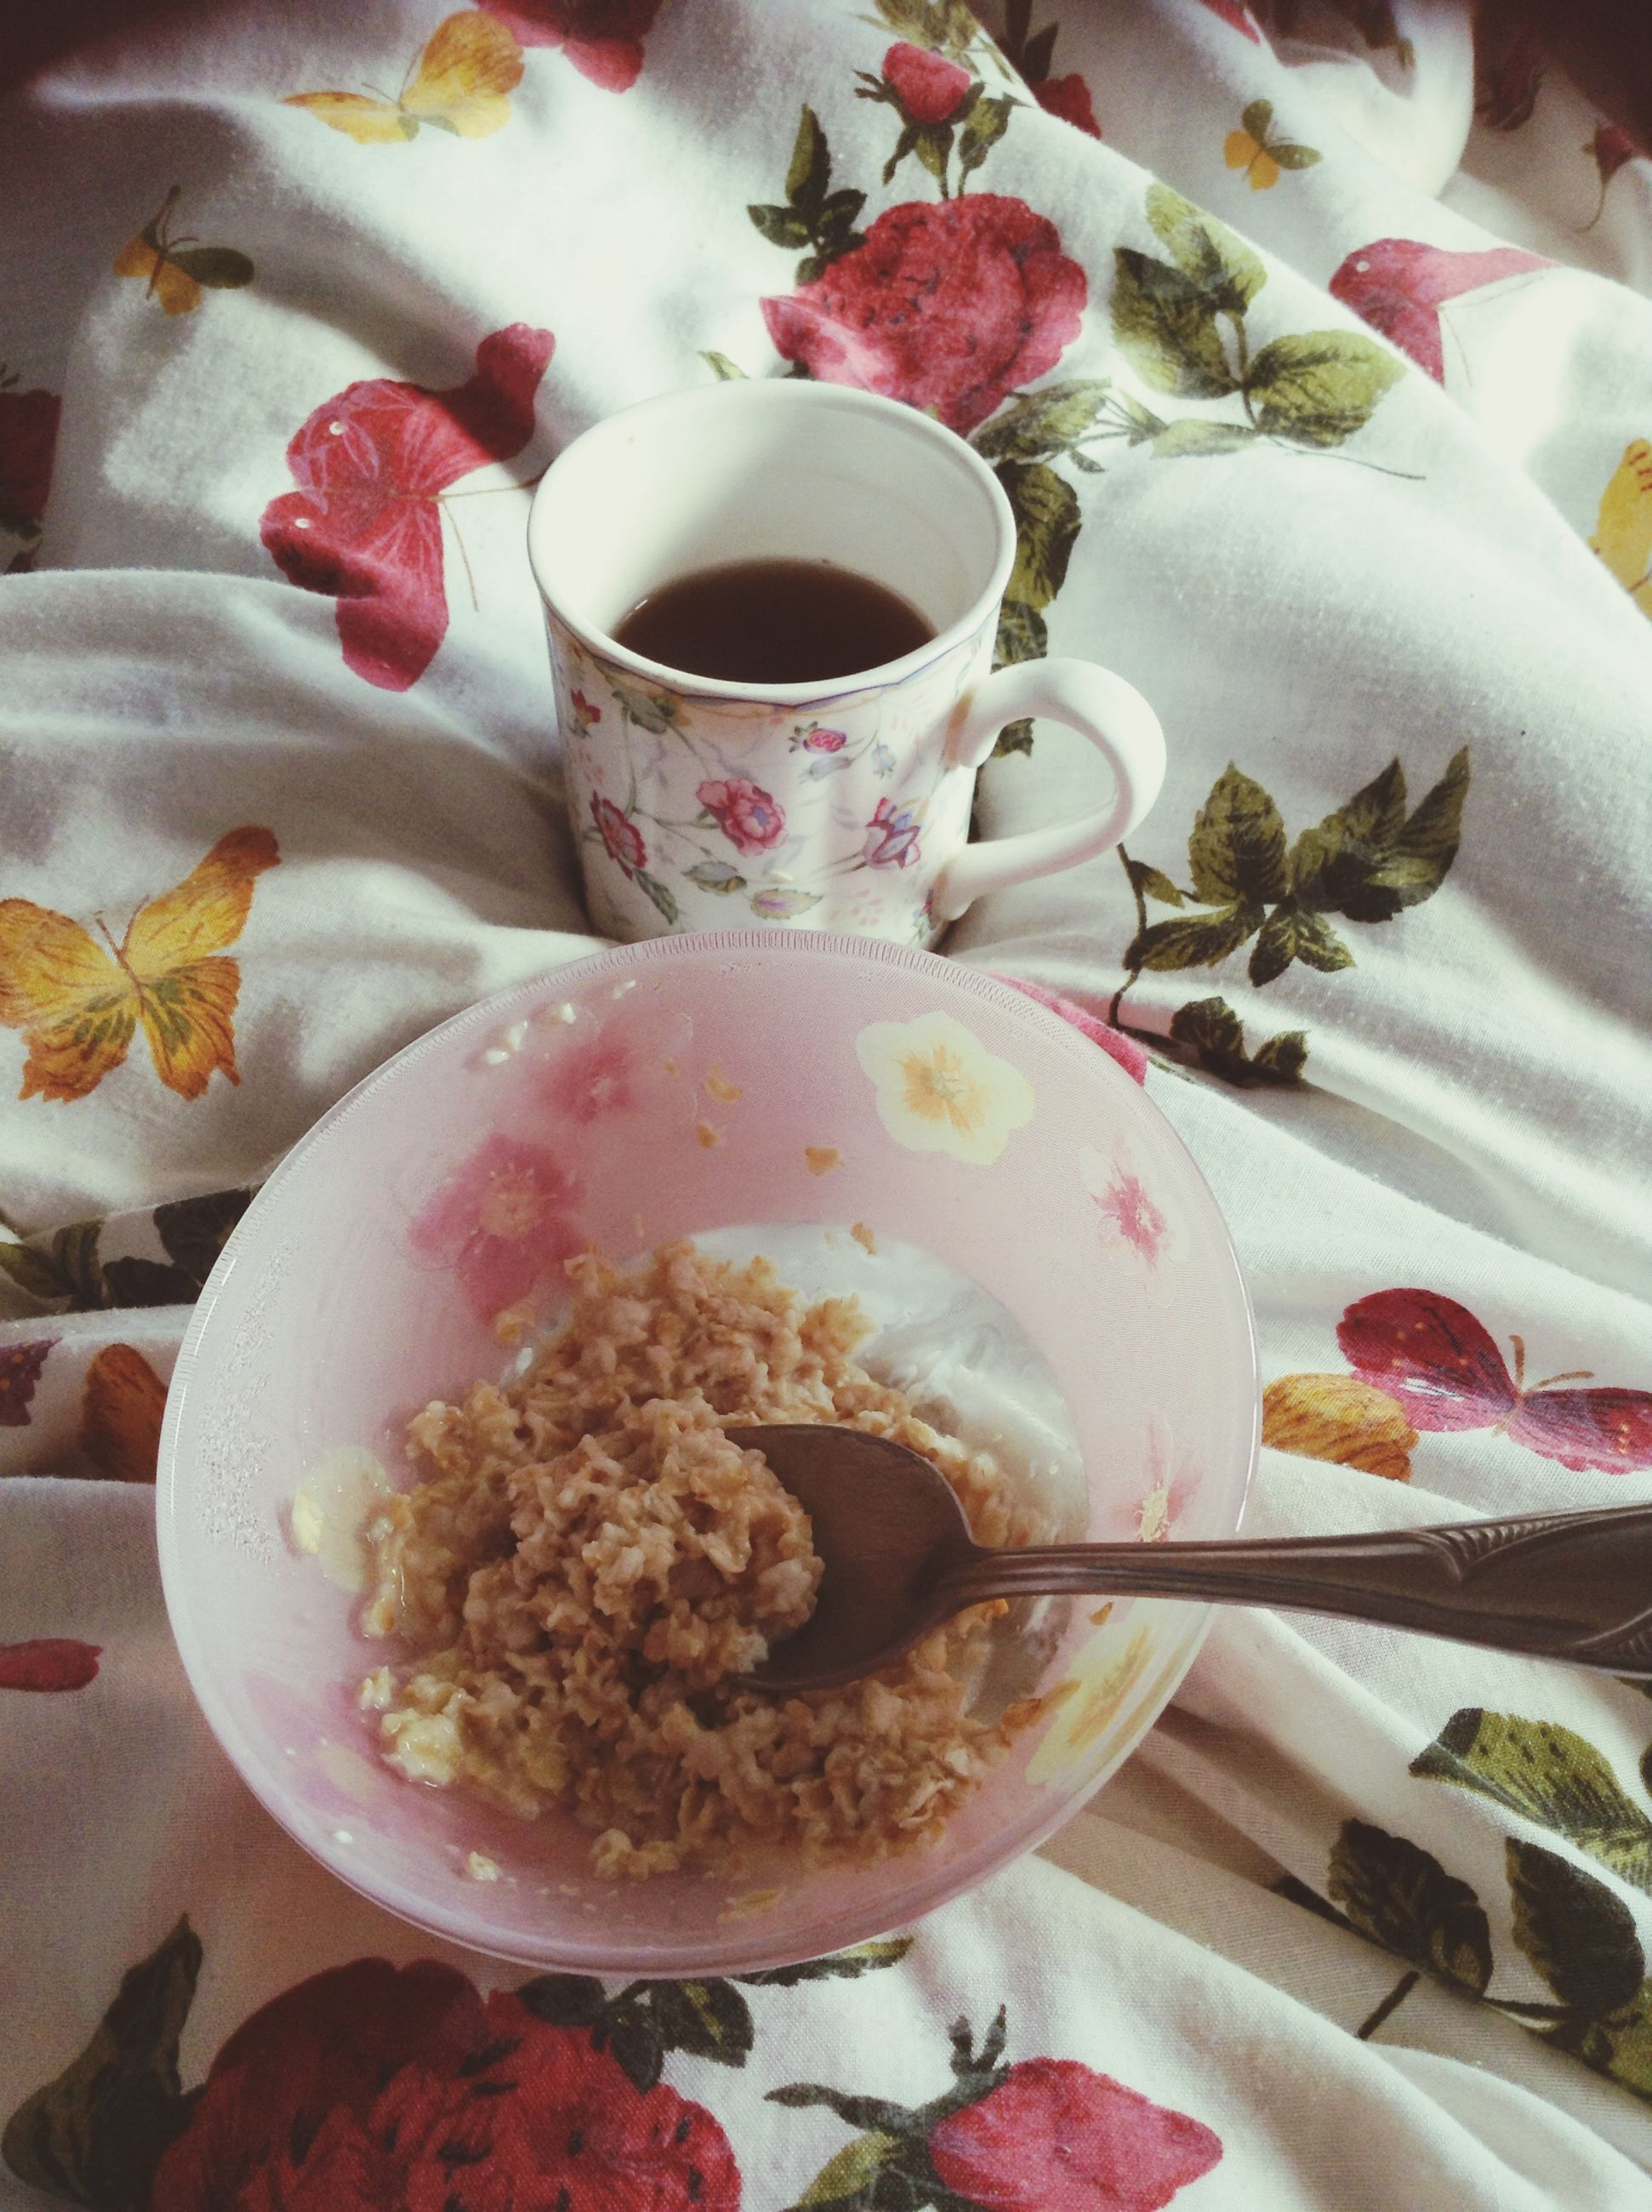 indoors, food and drink, freshness, table, plate, food, still life, drink, high angle view, spoon, refreshment, ready-to-eat, coffee cup, bowl, healthy eating, flower, saucer, tablecloth, cup, serving size